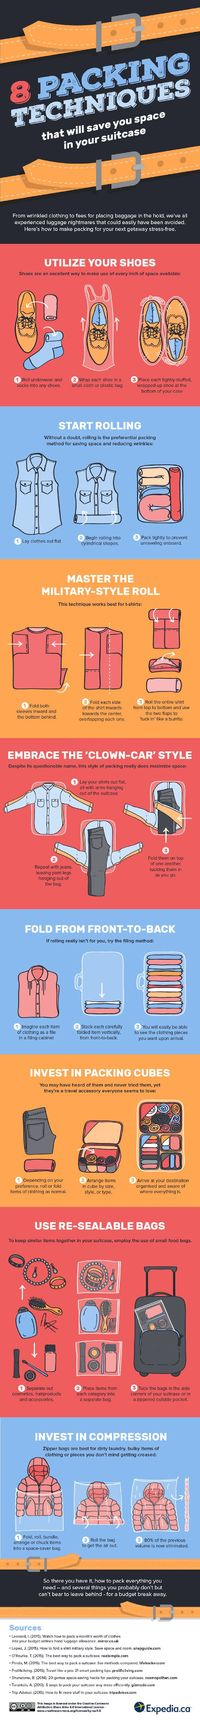 We've covered lots of ways to cram a lot of stuff in small suitcases, but this video and infographic from Expedia is full of handy packing tips to remember the